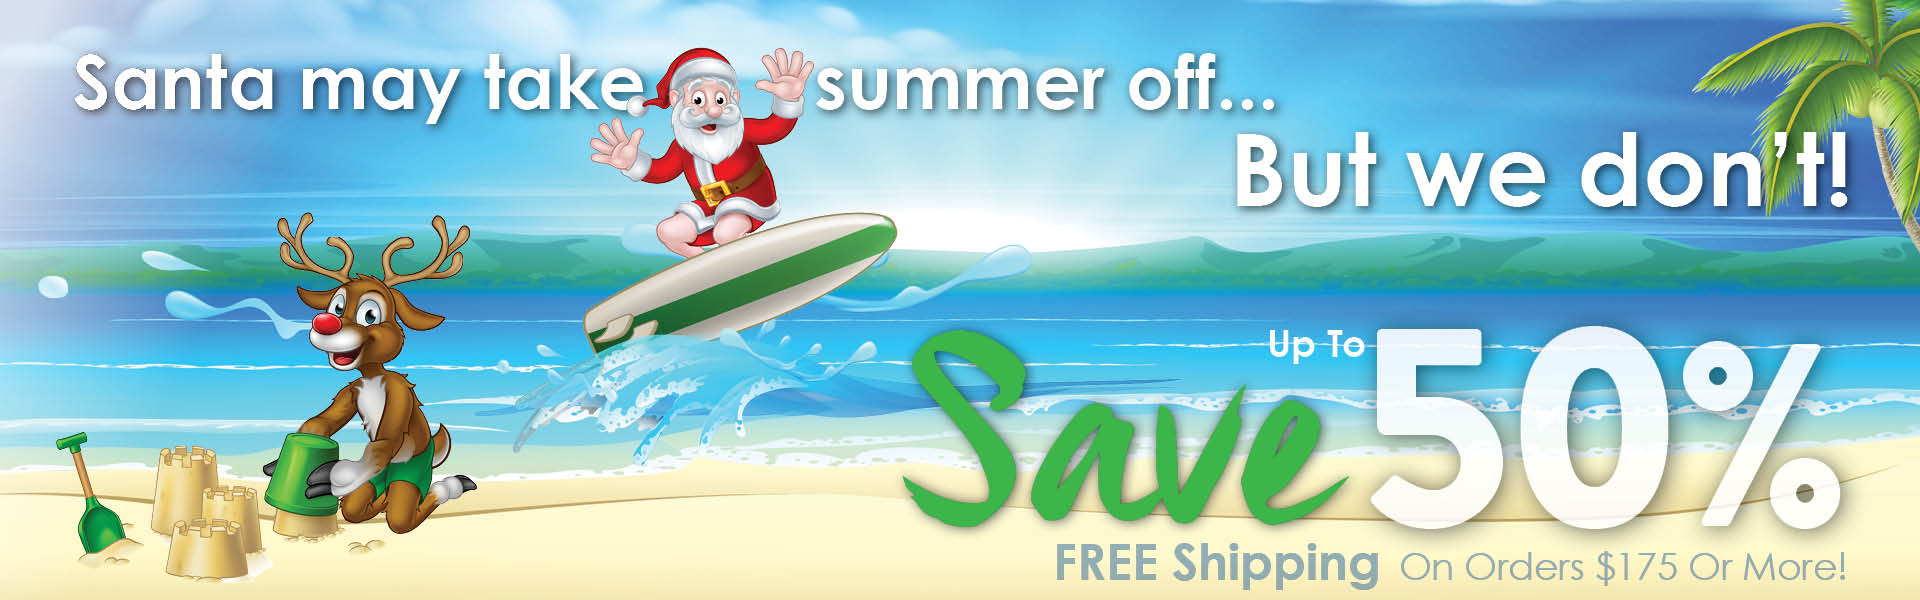 Christmas in July Sale! Save Up To 50%